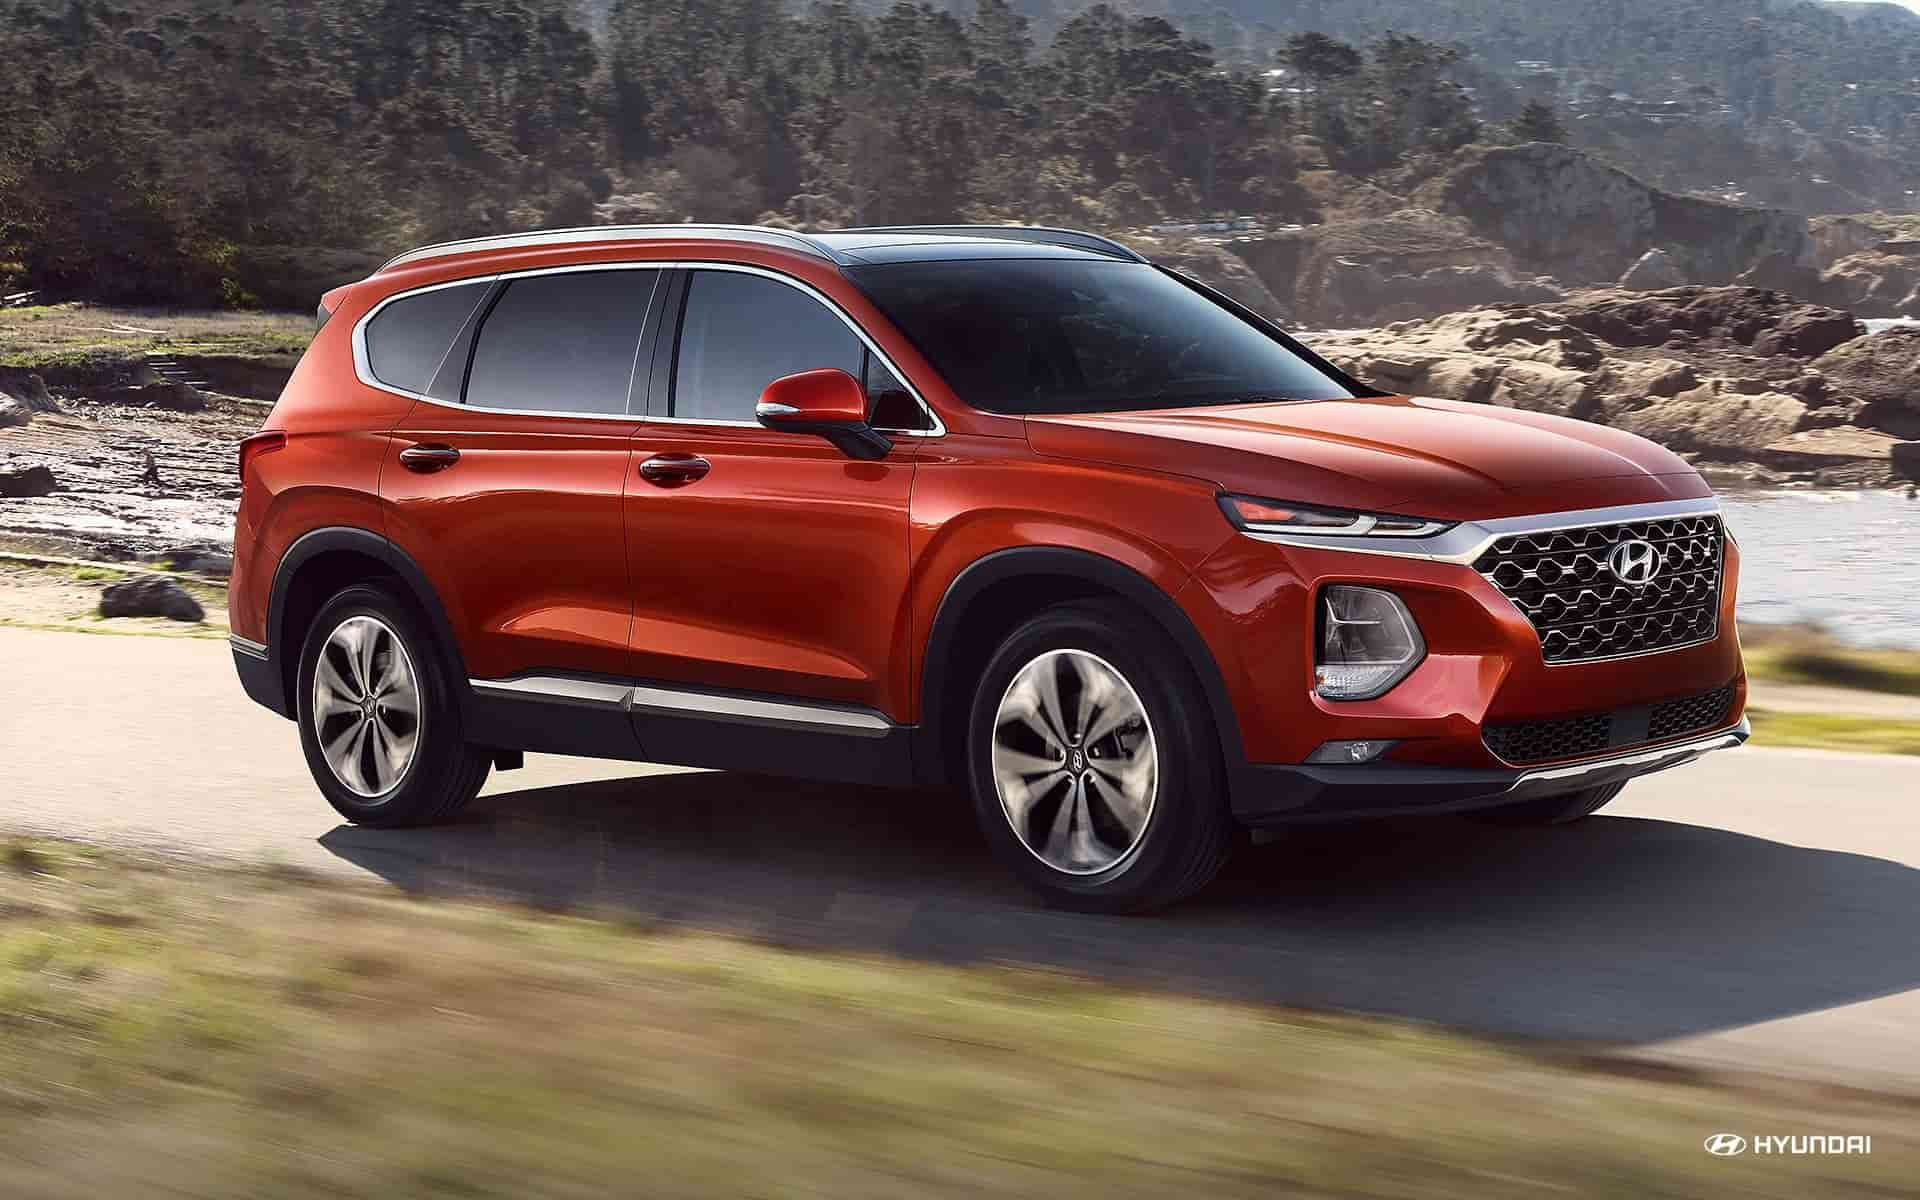 What's new with the 2020 Hyundai Santa Fe near Monroe NC